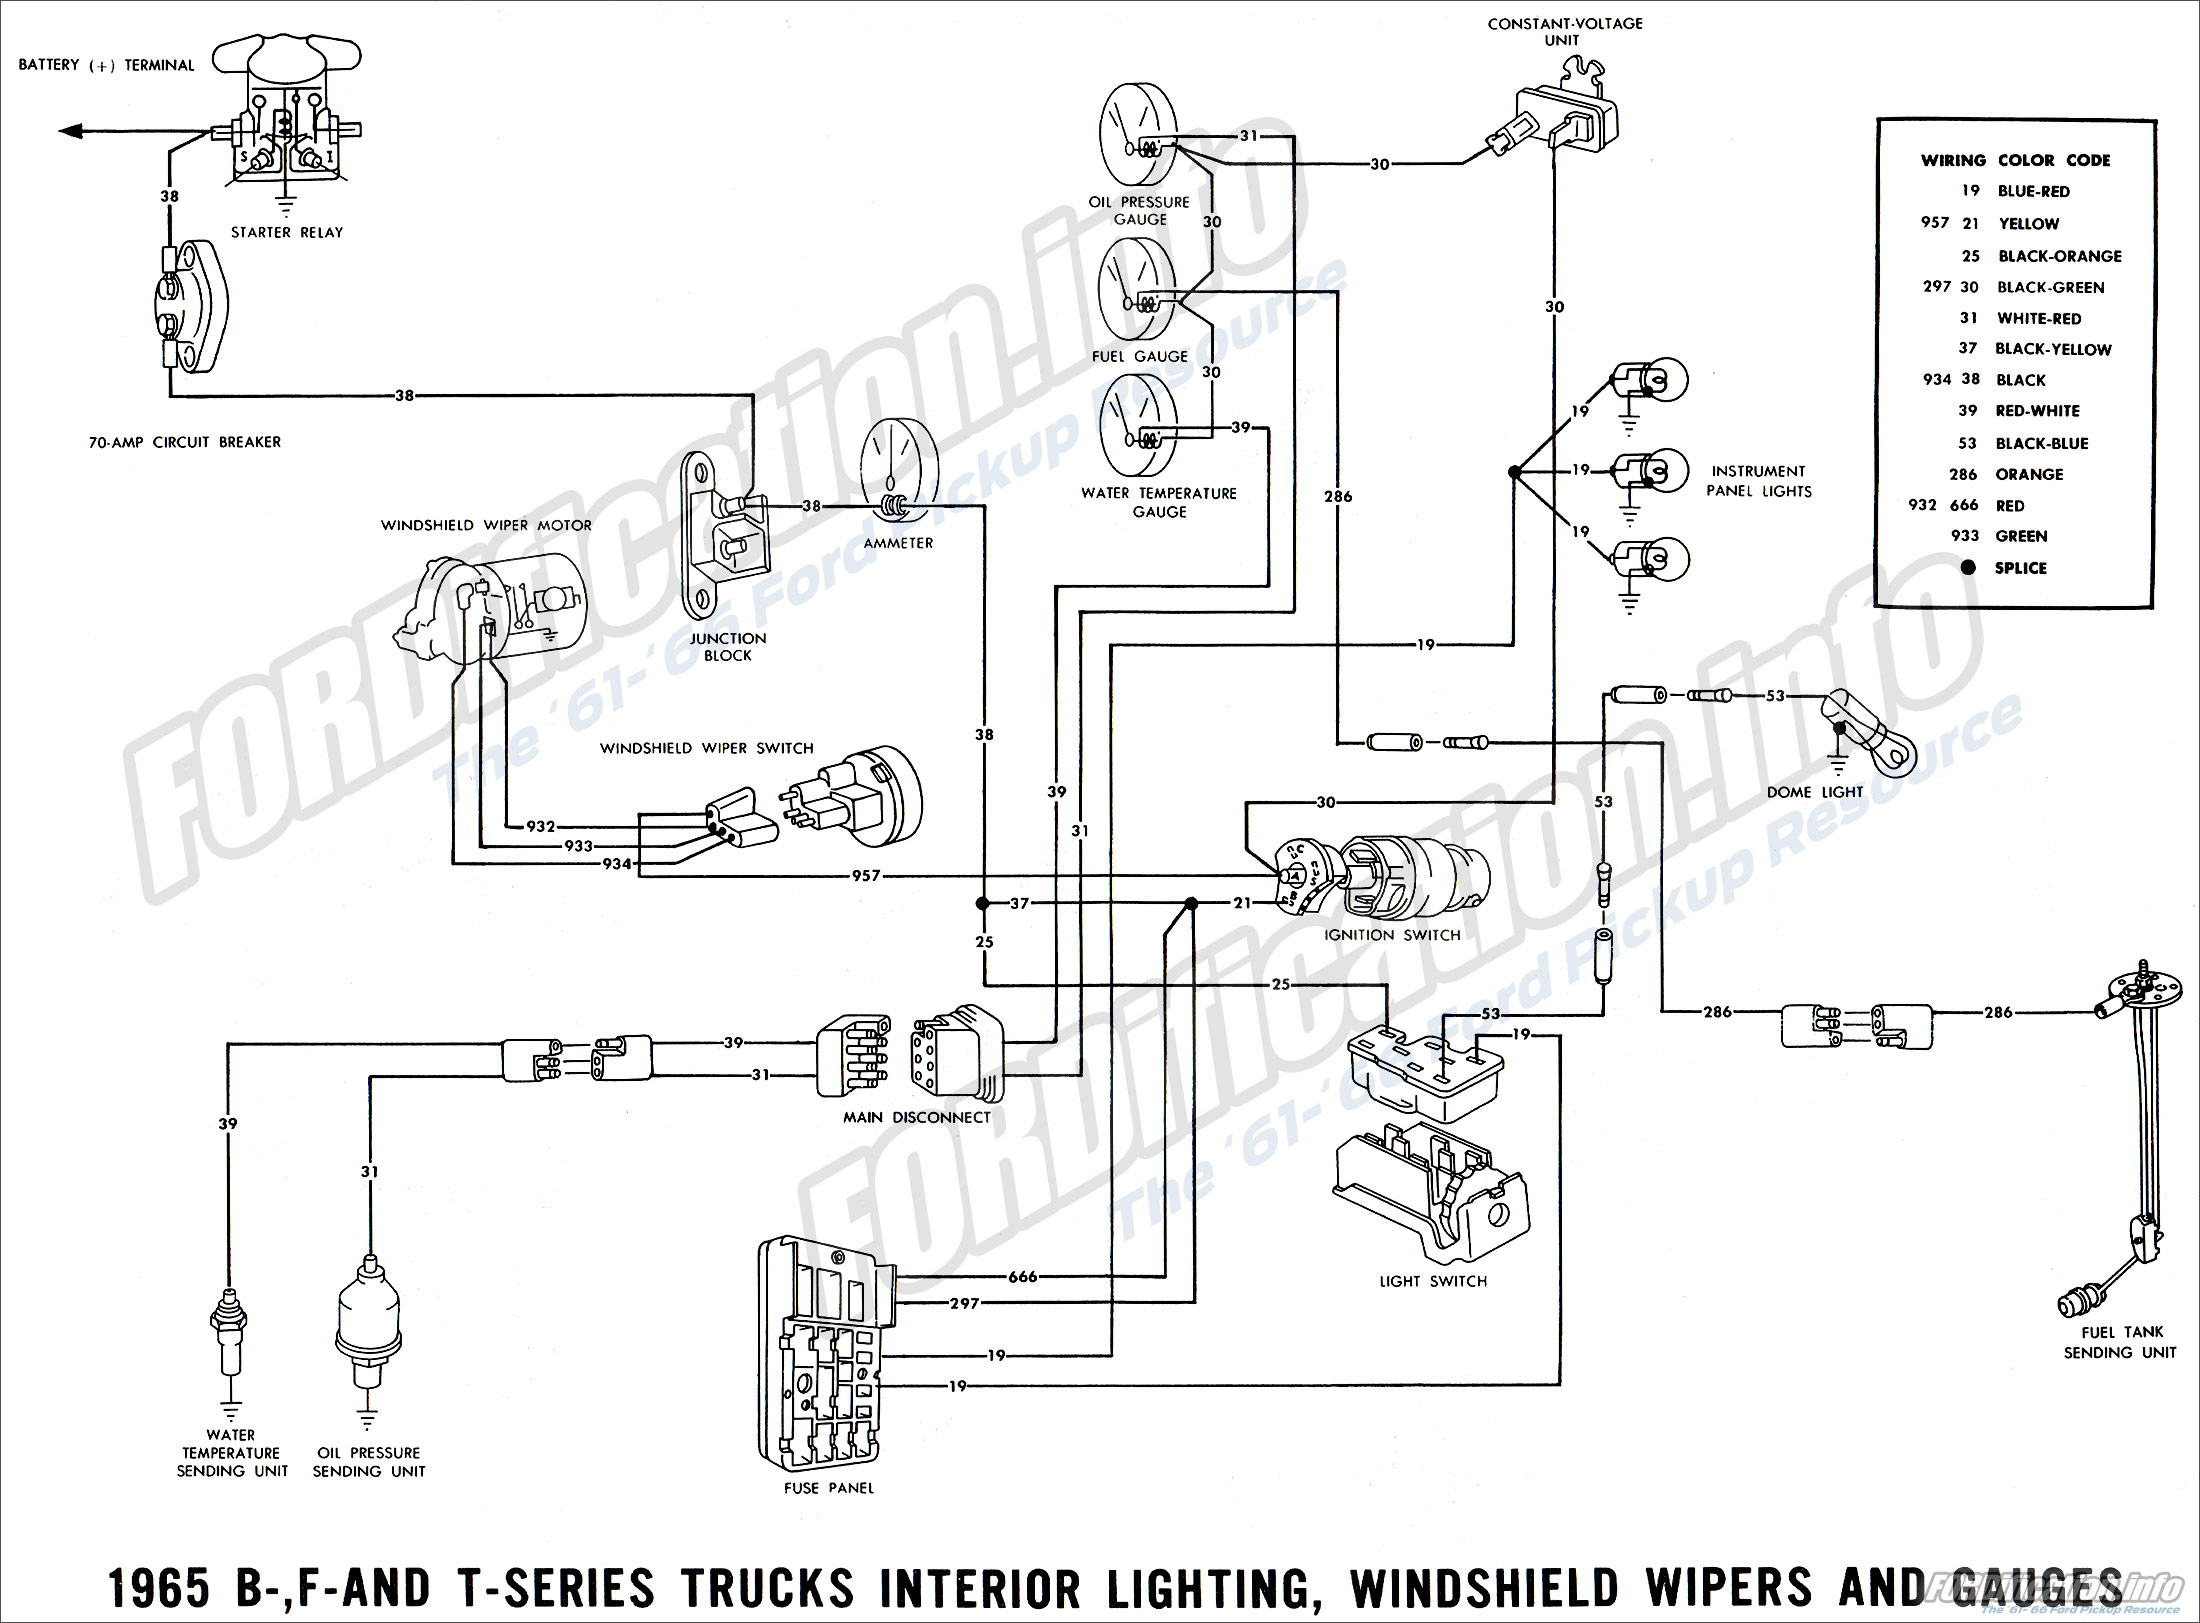 1965 ford truck wiring diagrams - fordification.info - the ... 65 ford f100 wiring diagrams truck